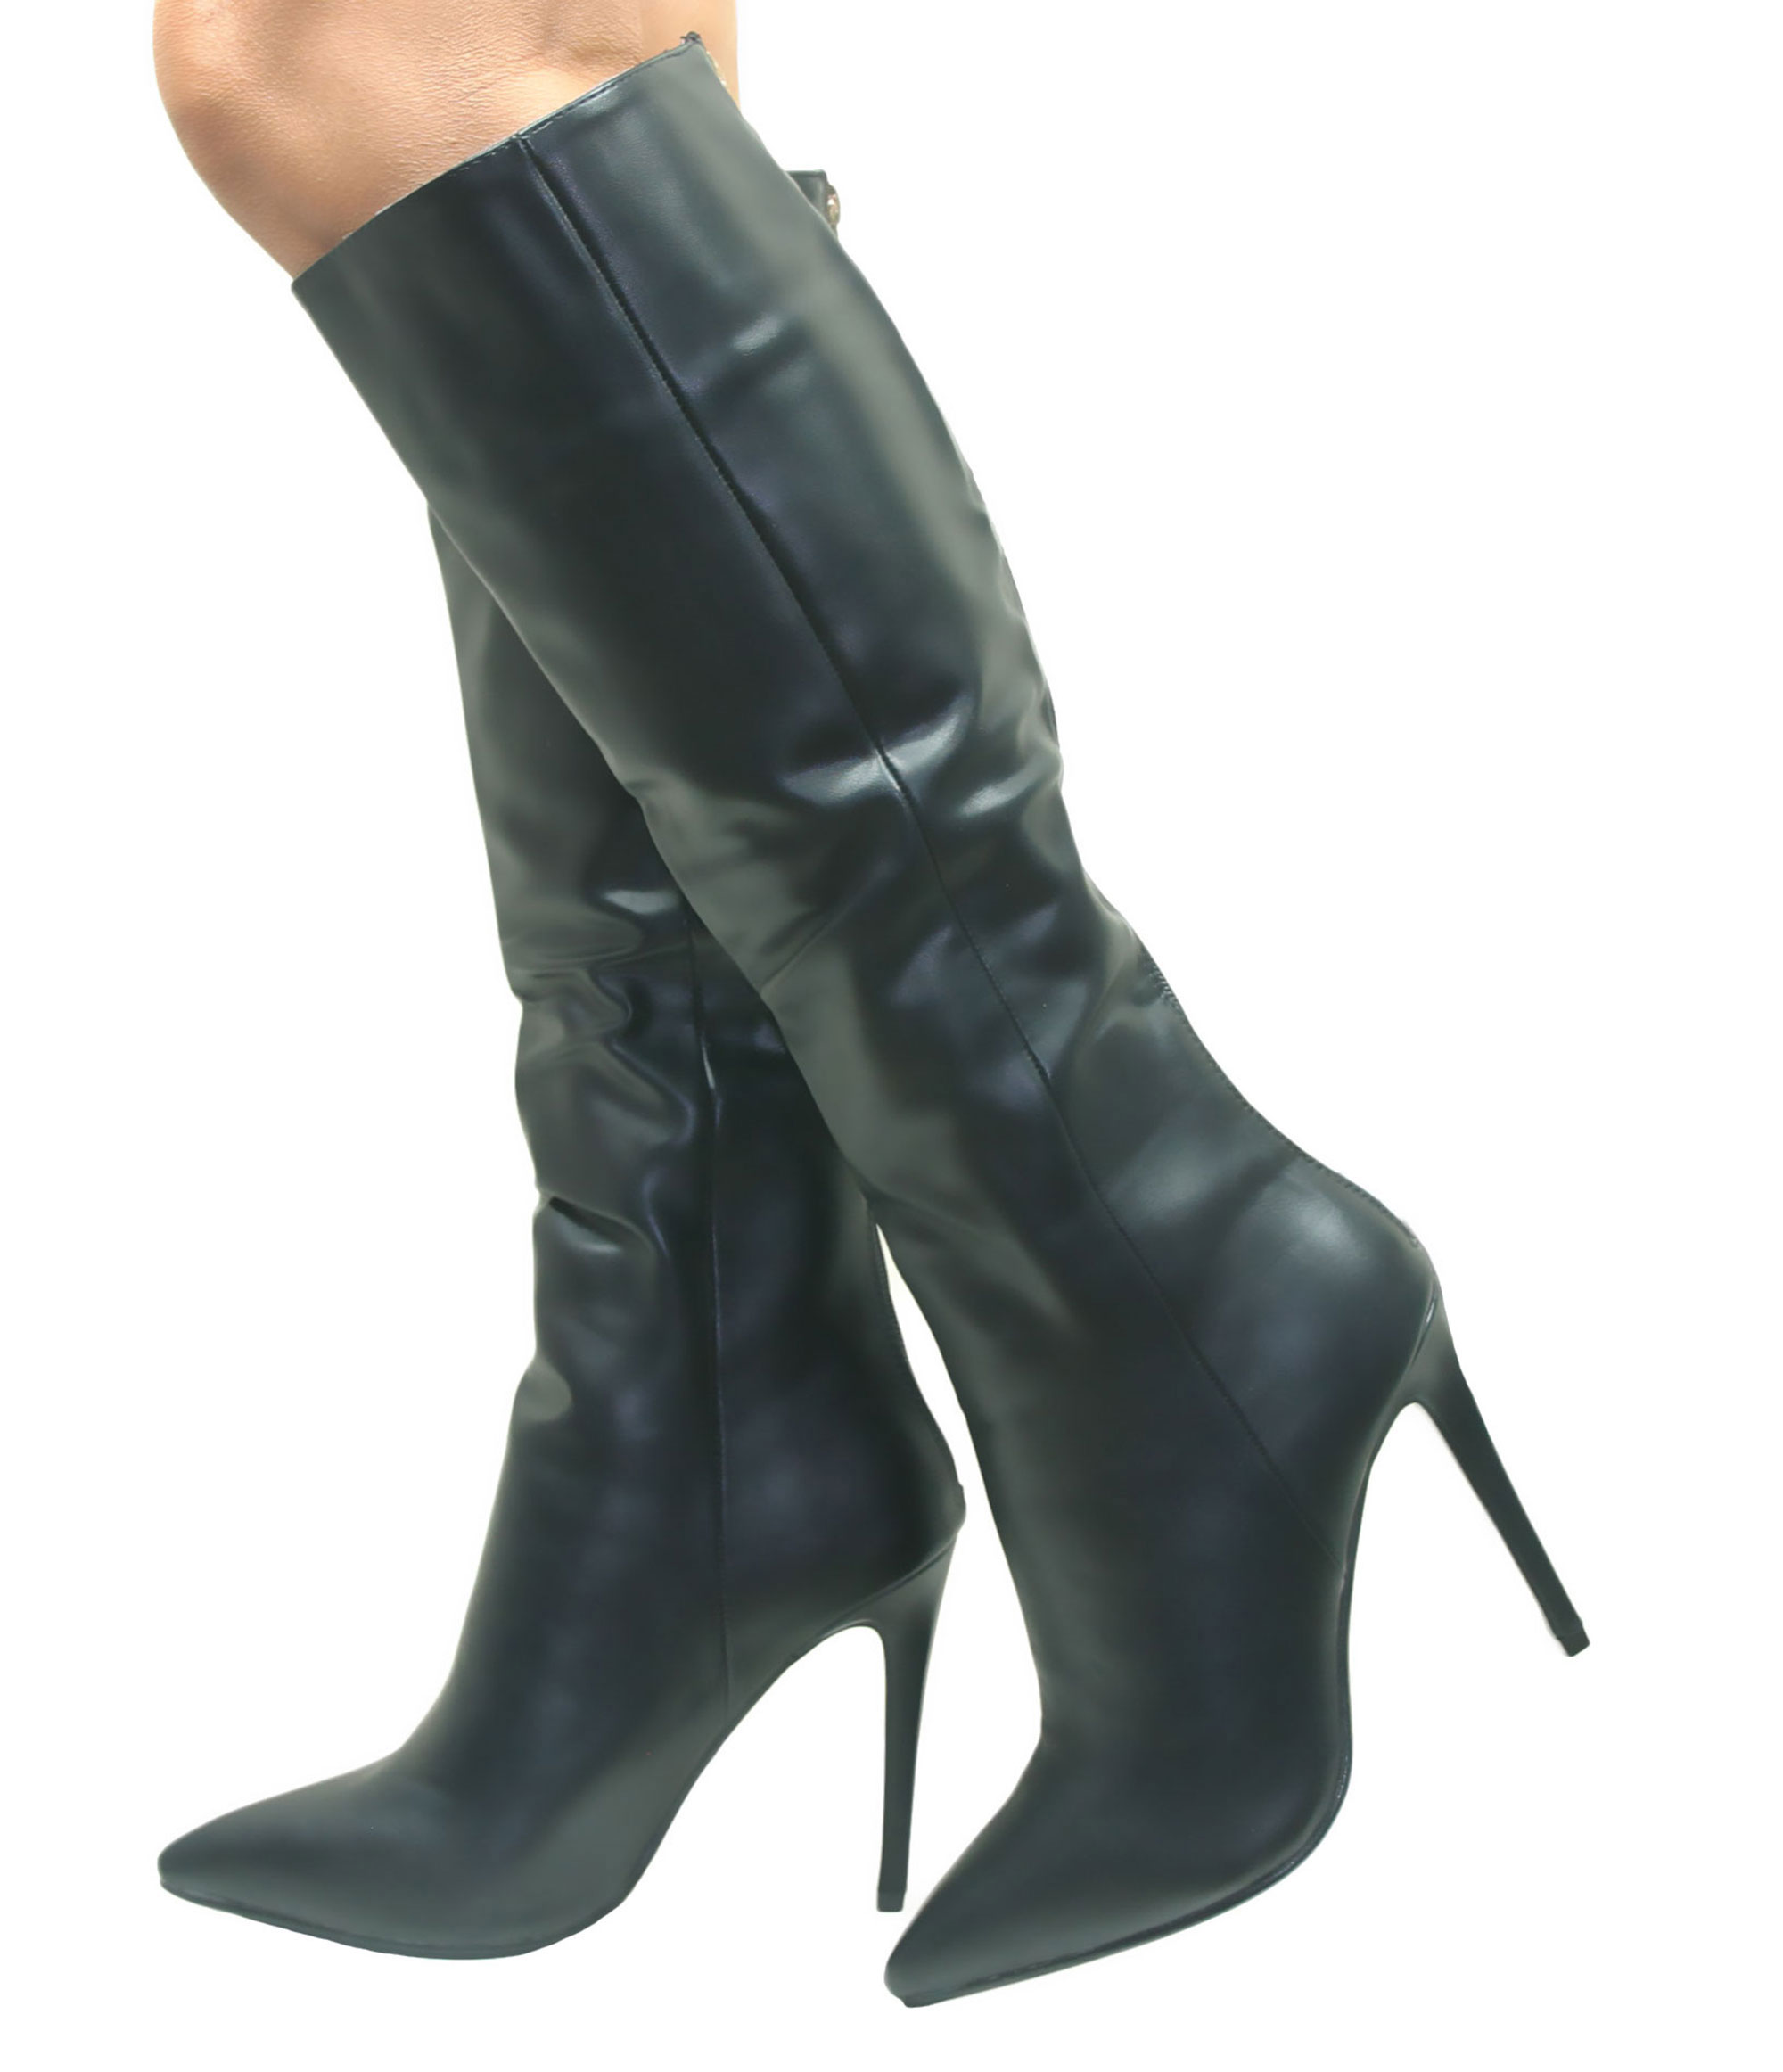 stiletto heel womens knee high pointed boots